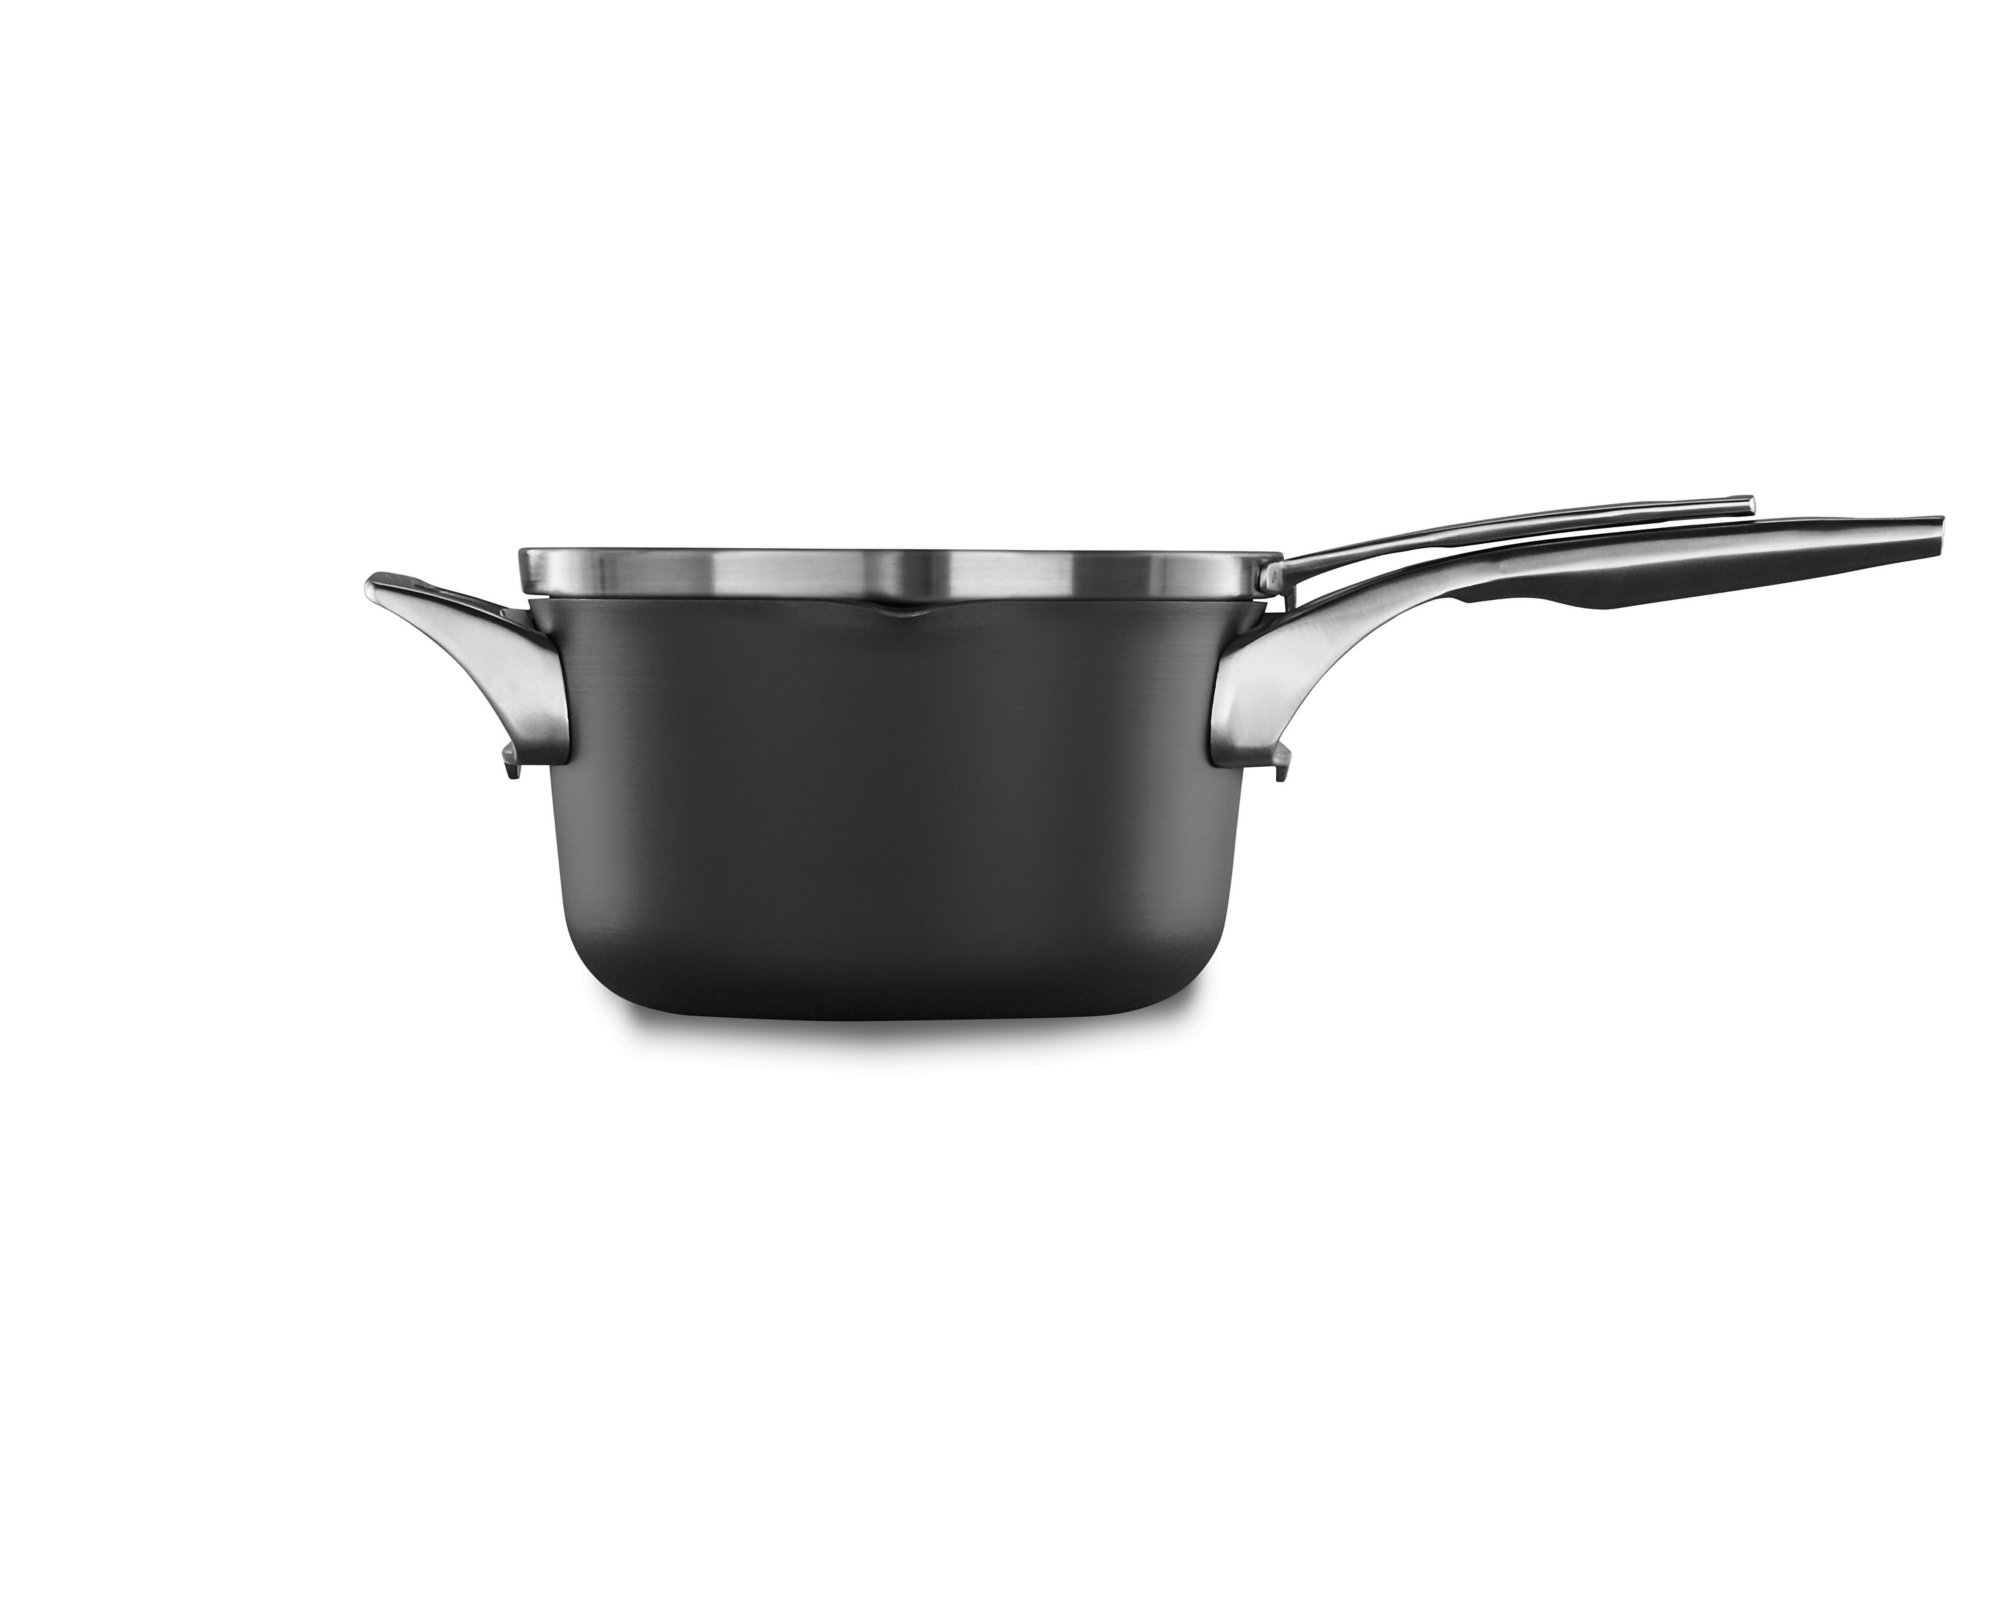 Calphalon Premier™ Space Saving Hard Anodized Nonstick 3.5 qt. Pour and Strain Sauce Pan